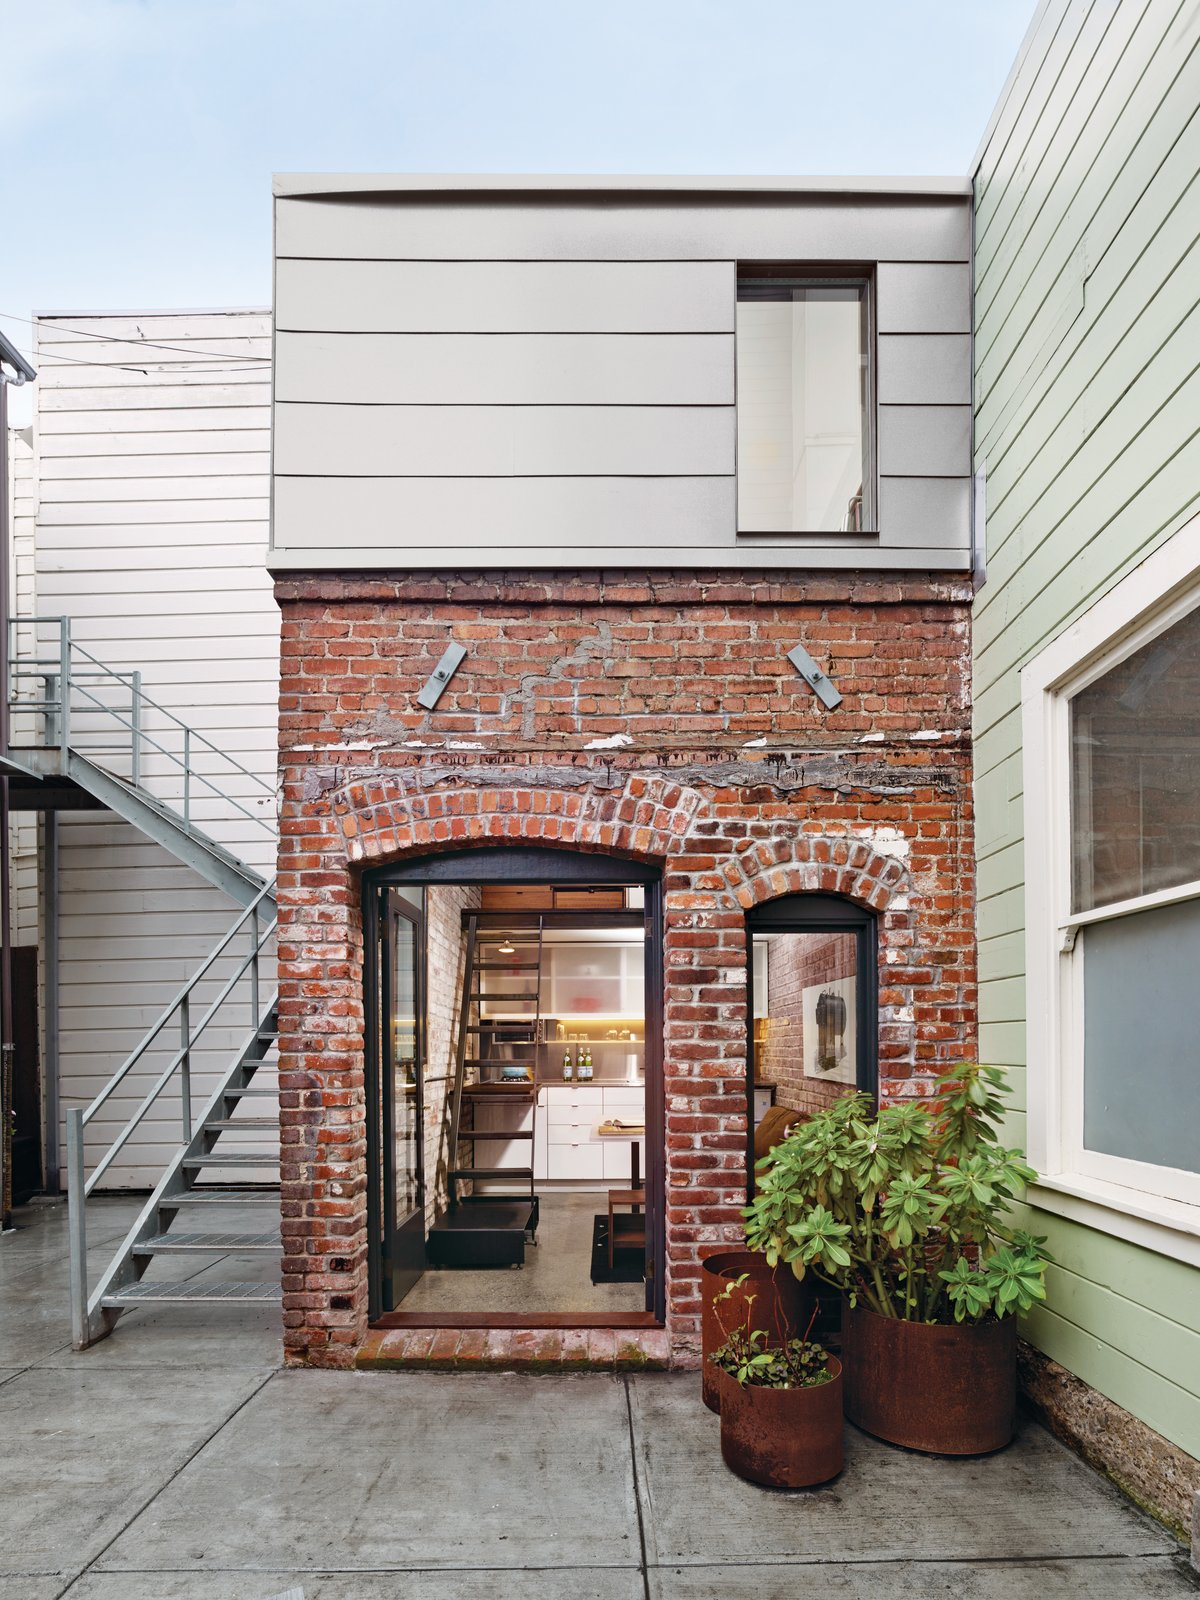 Concrete, Small, Back Yard, Exterior, House, and Brick A COMPACT THREE-STORY BRICK LOFT IN SAN FRANCISCO  Making the most of vertical space unleashes the potential of a petite San Francisco project.  Photo by Cesar Rubio.  Best Exterior Concrete Photos from A Compact Three-Story Brick Loft in San Francisco